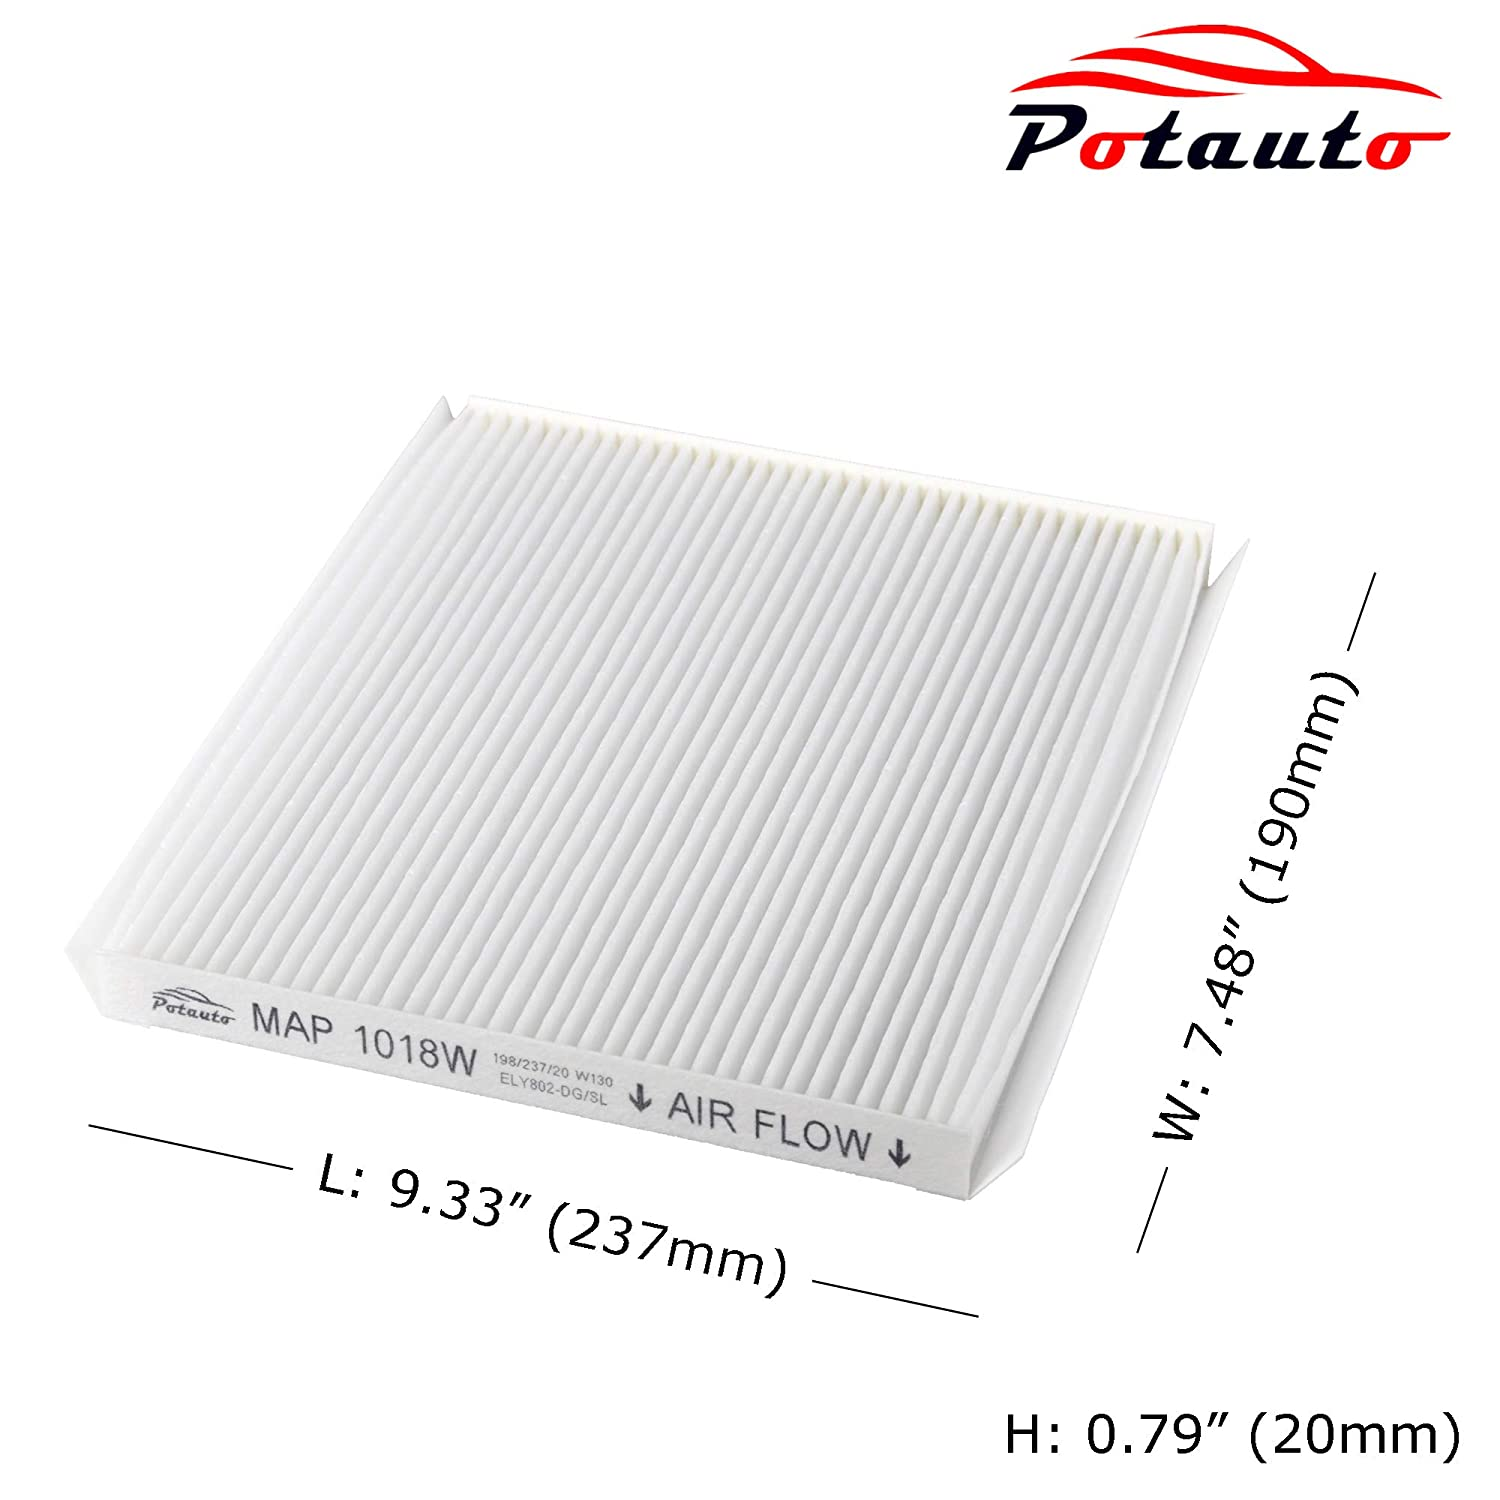 POTAUTO MAP 1018W Cabin Air Filter Replacement compatible with HYUNDAI Forte Elantra KIA Accent